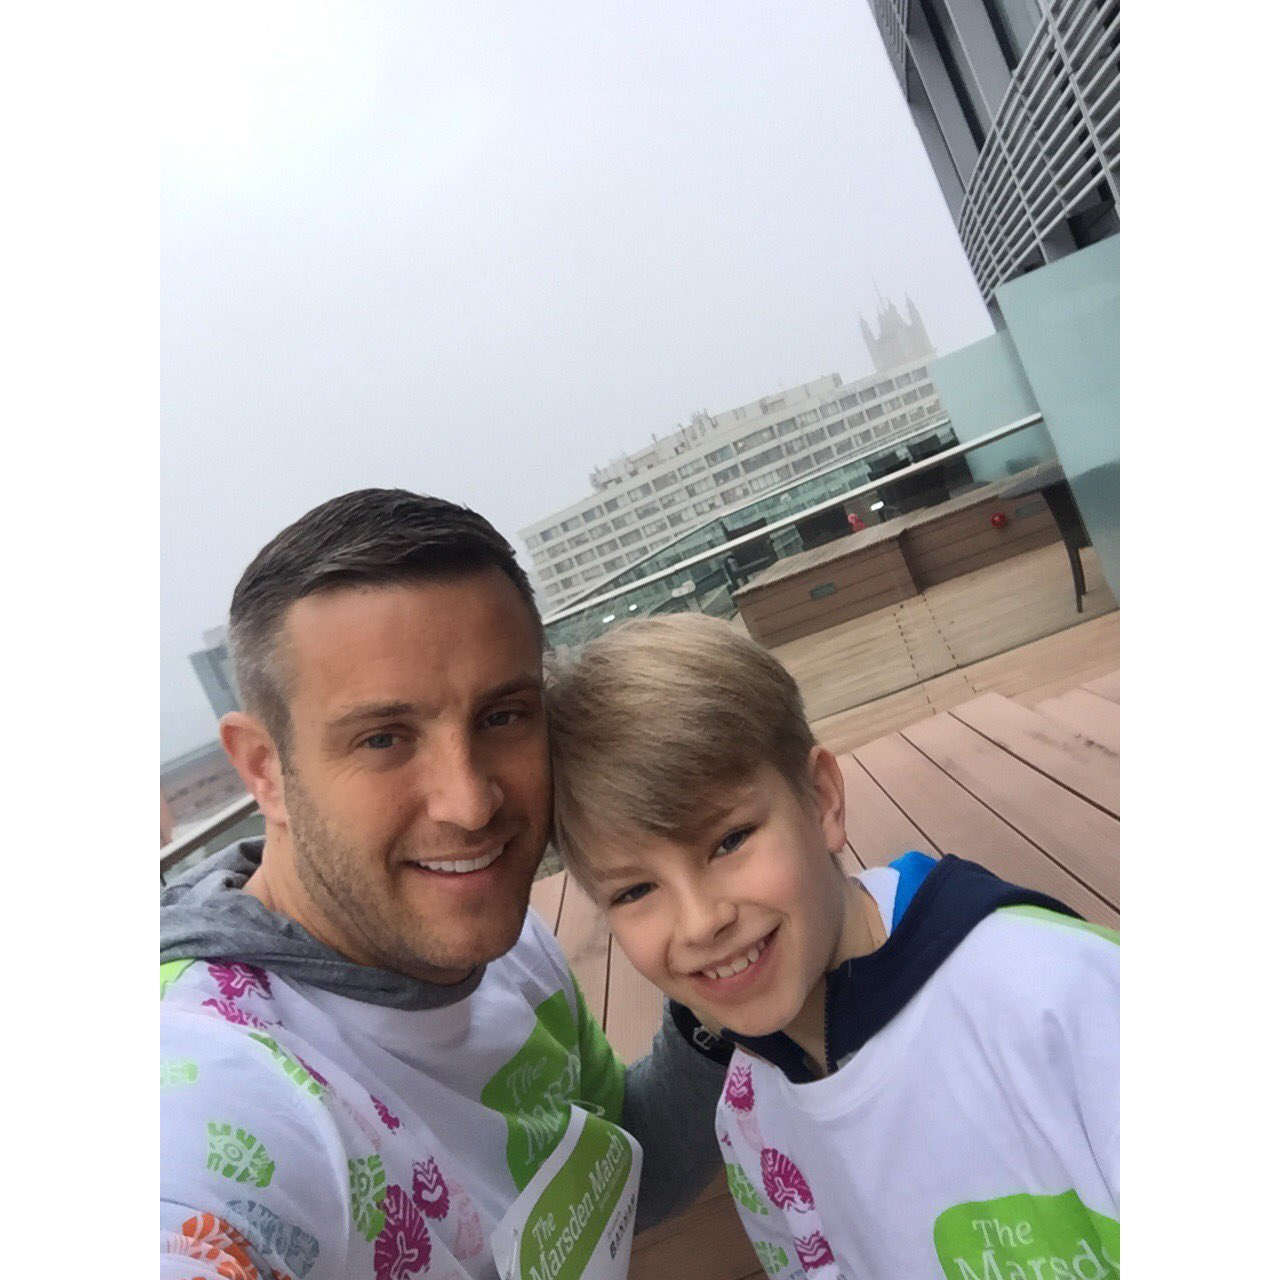 Up early to support my dad on the #MarsdenMarch thanks @parkplazahotels #westminsterbridge for a great nights sleep! https://t.co/vG8Ob5ZoFc